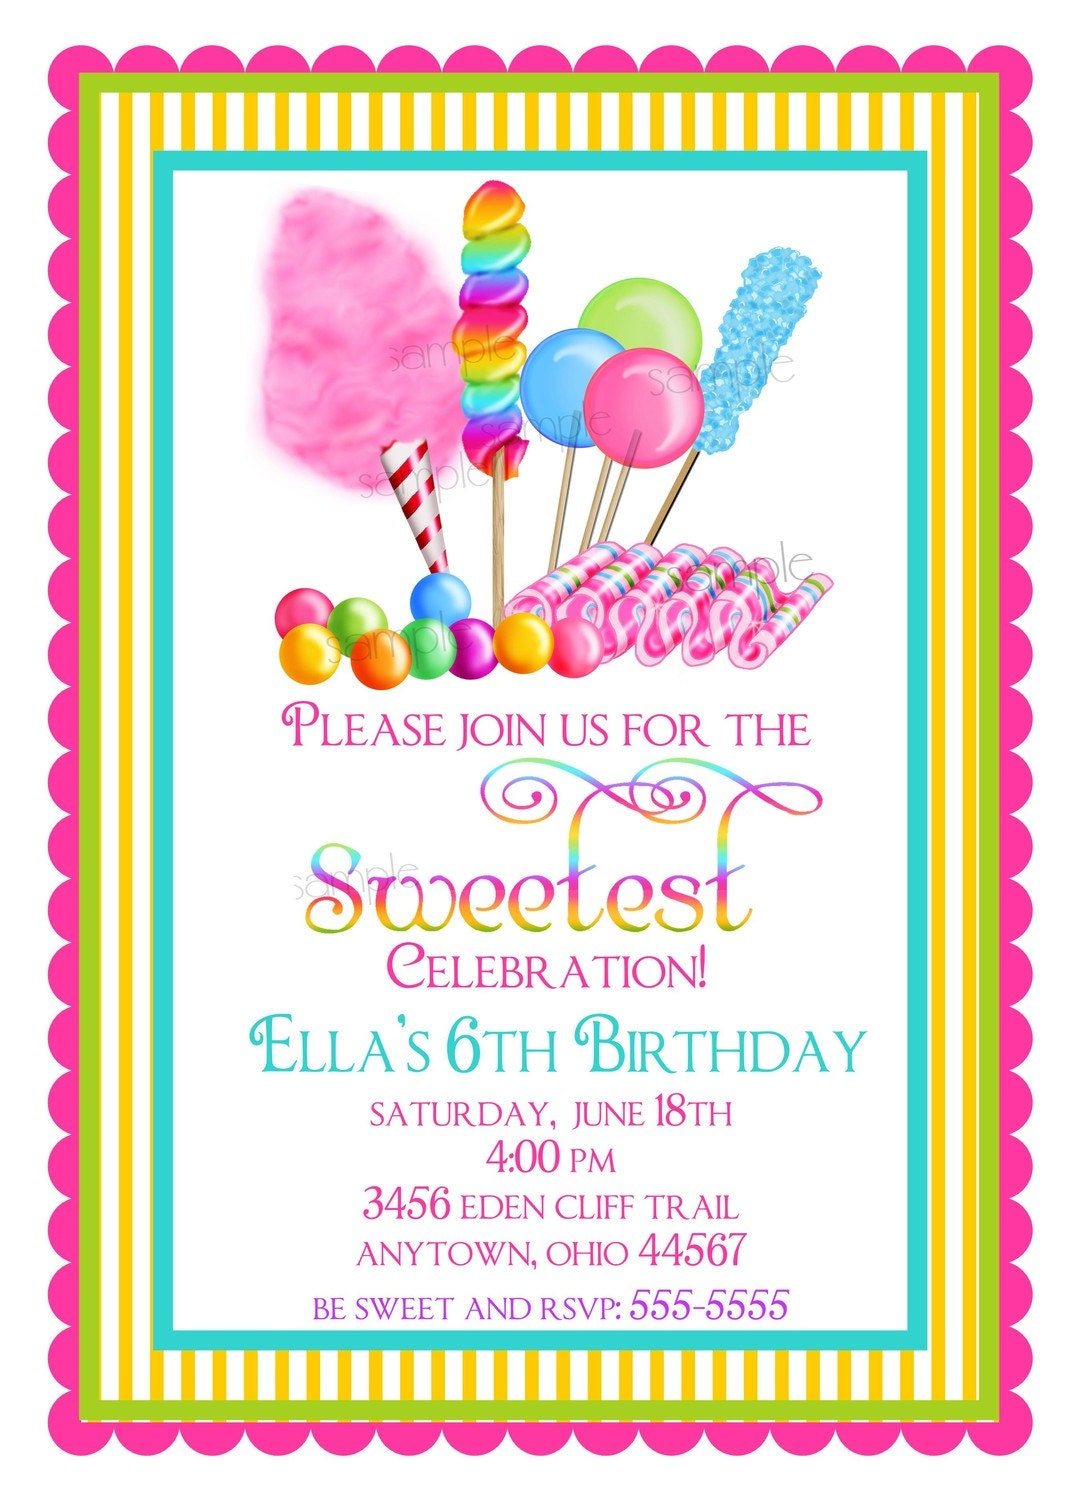 Ideas For Invitations : Candyland invitation ideas party invitations